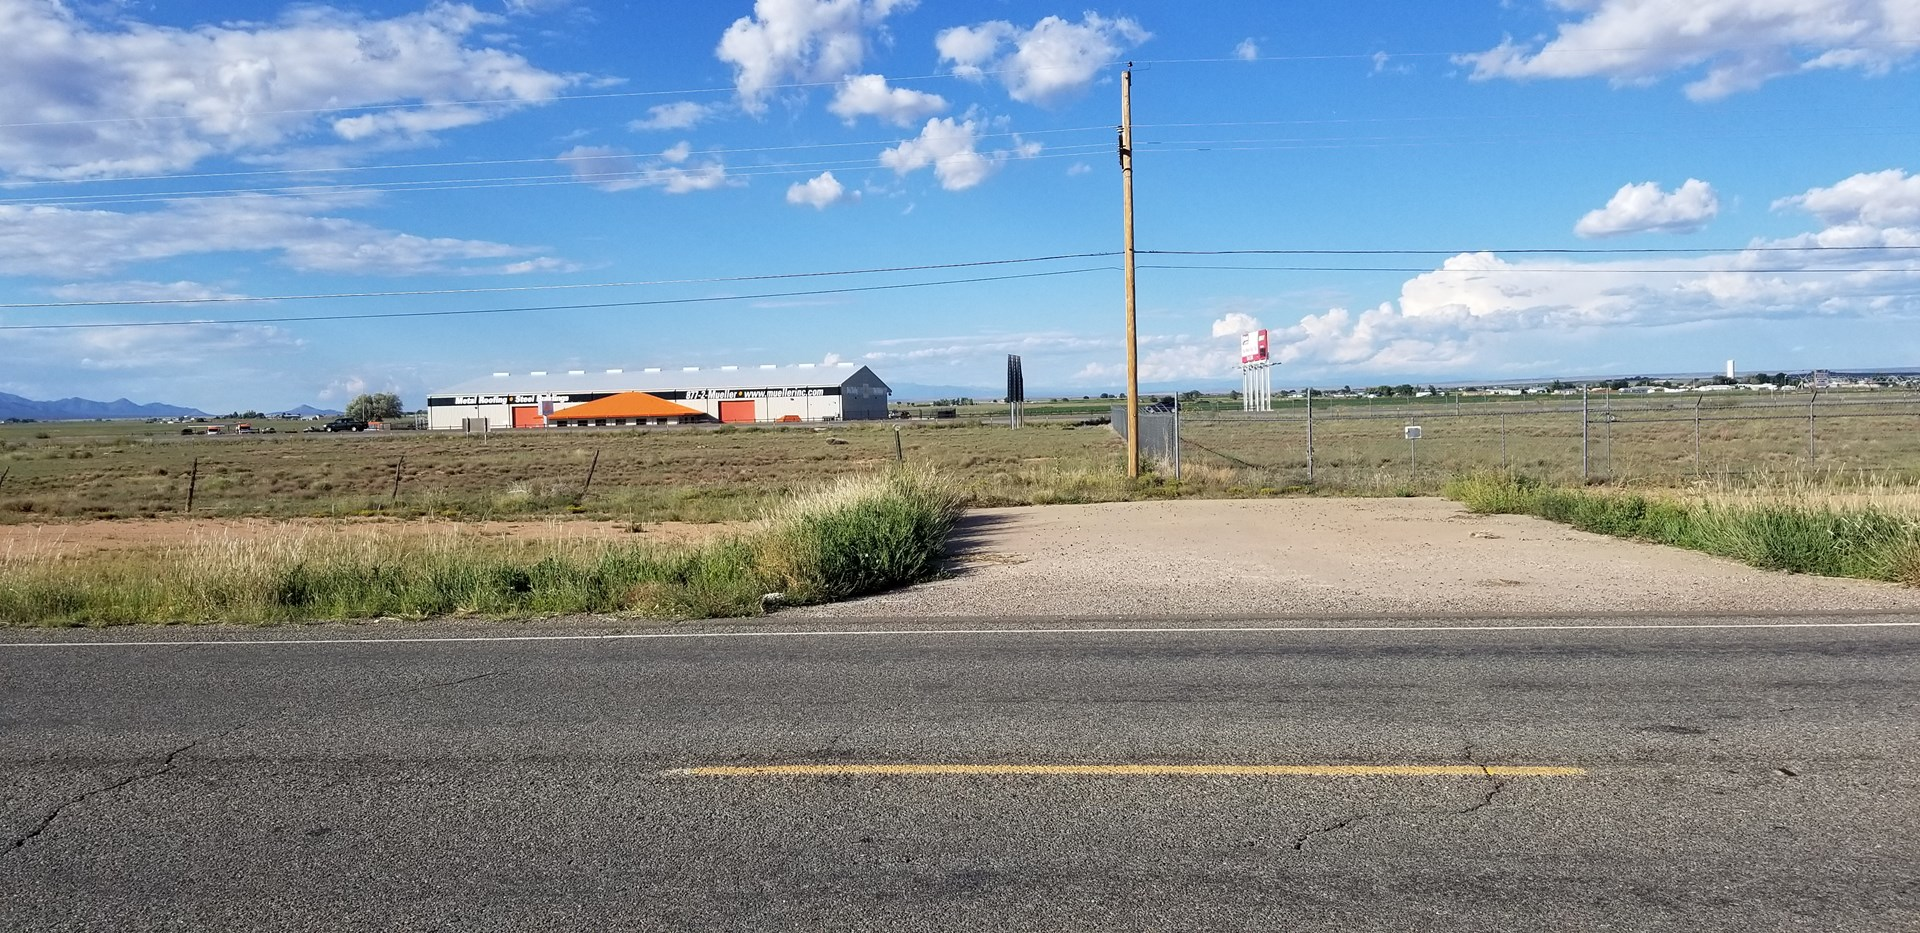 Central NM Commercial Land For Sale in Moriarty 1.98 Acres